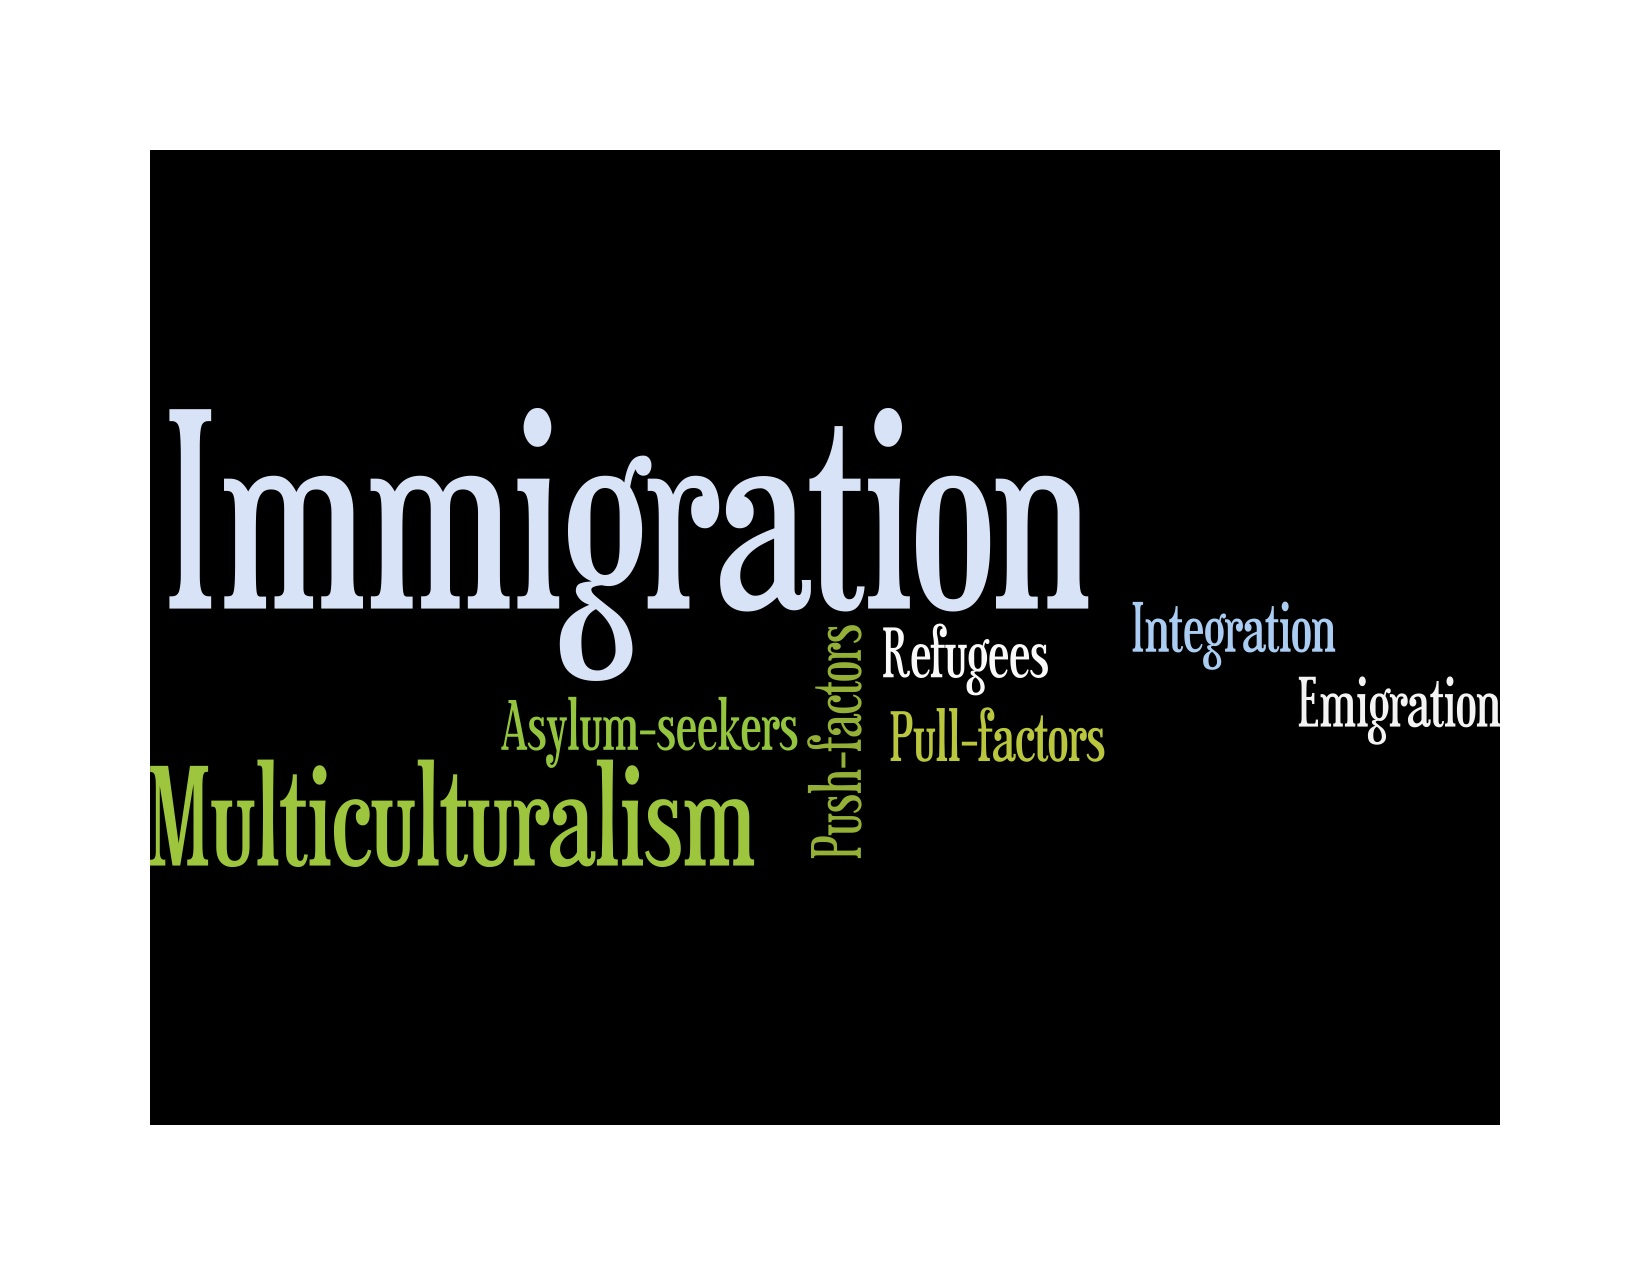 016 Immigration Essay Example Exceptional Conclusion Topics Full